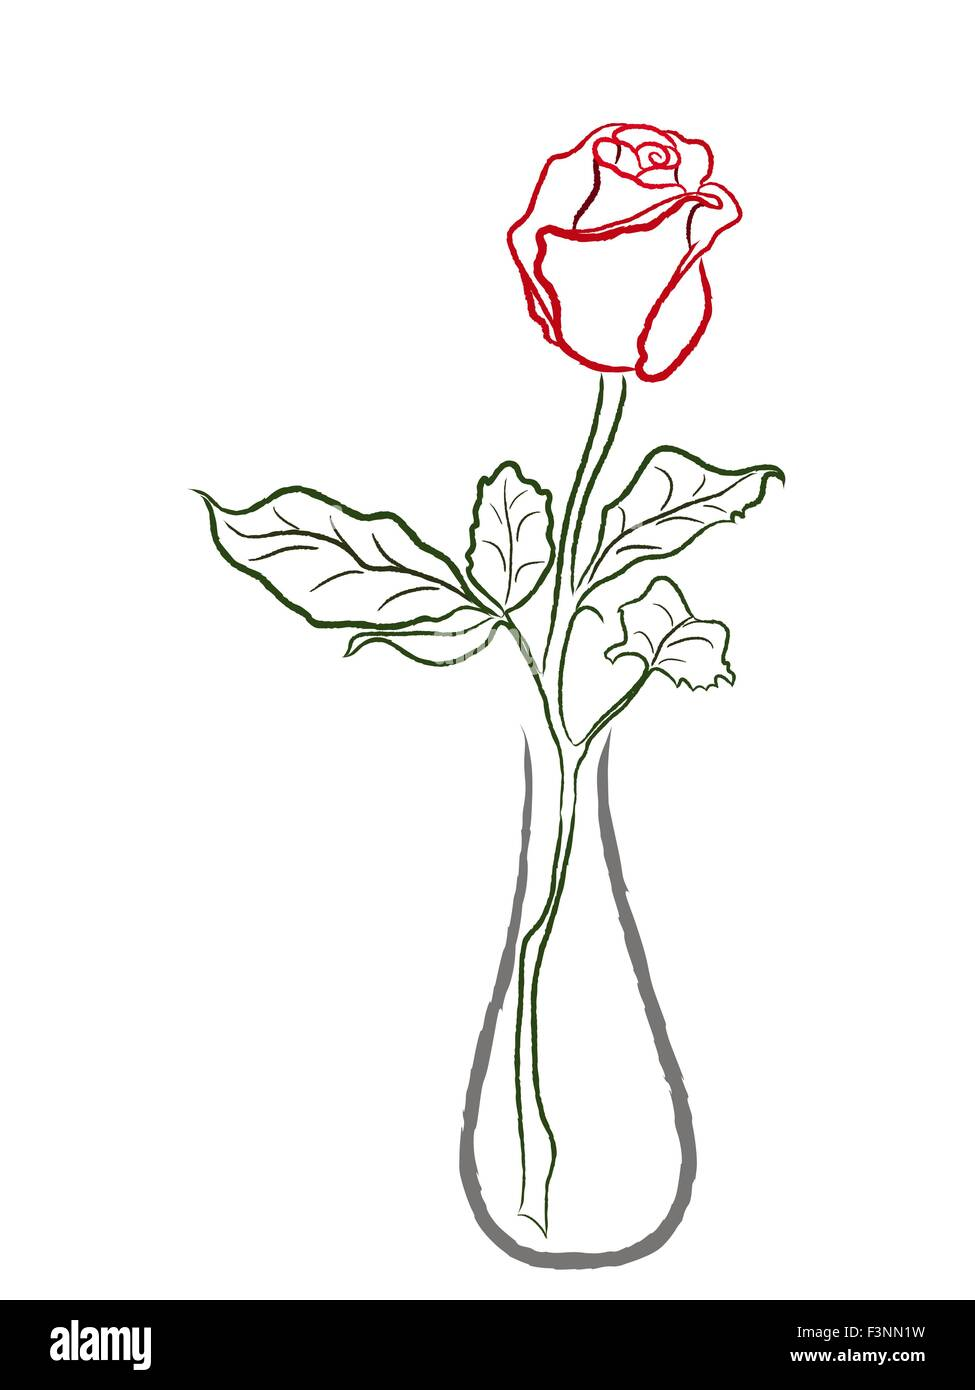 Stylized Red Rose In A Vase Isolated On White Background